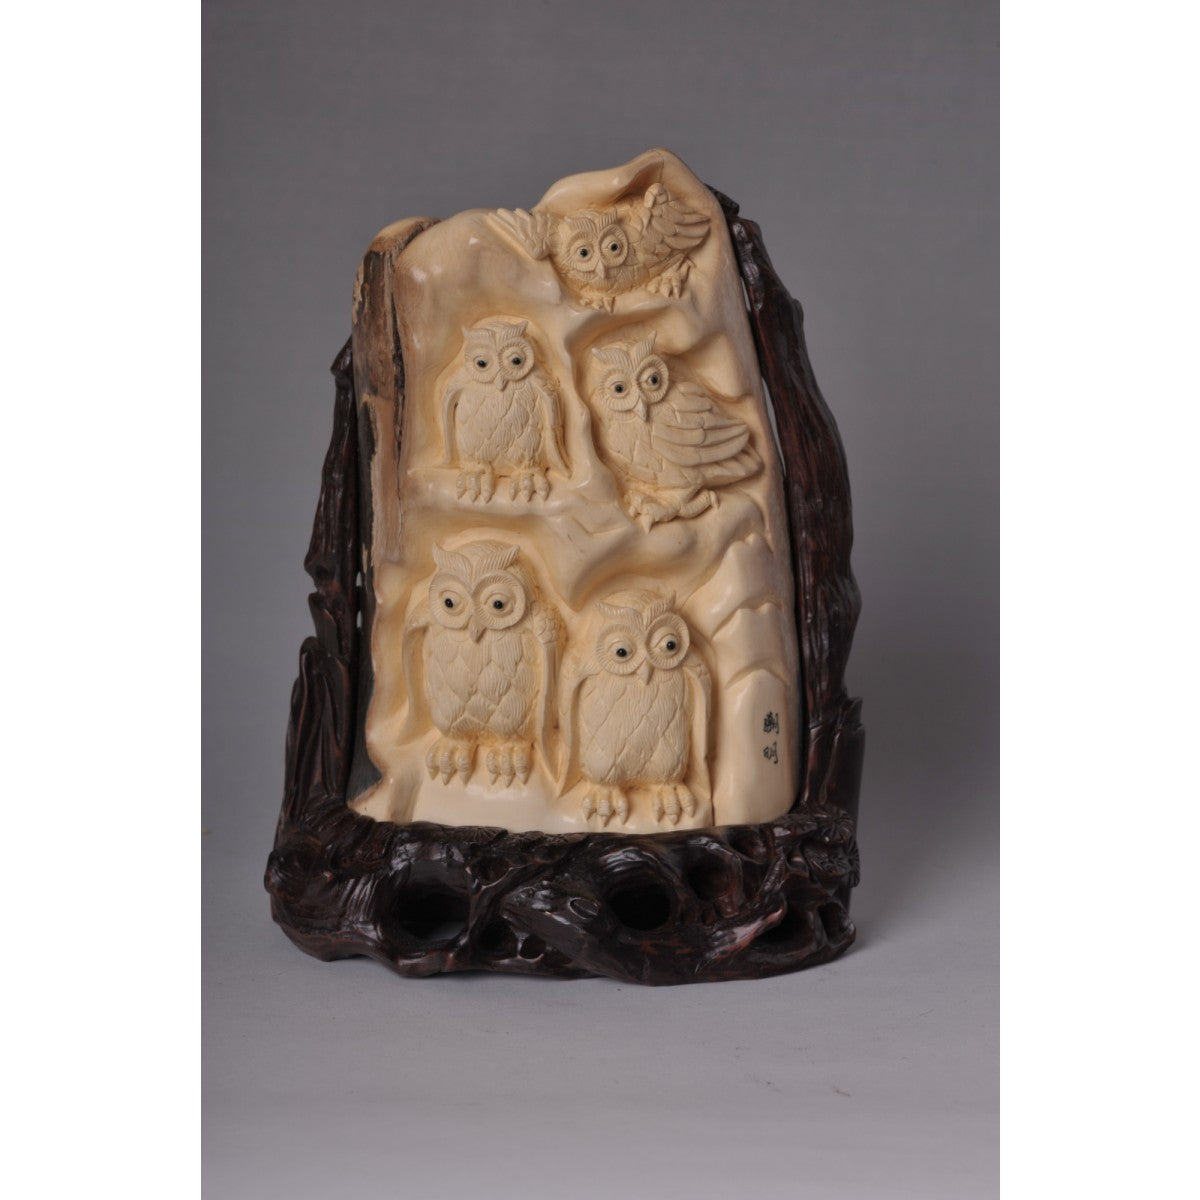 Mammoth Ivory- Group of Owls